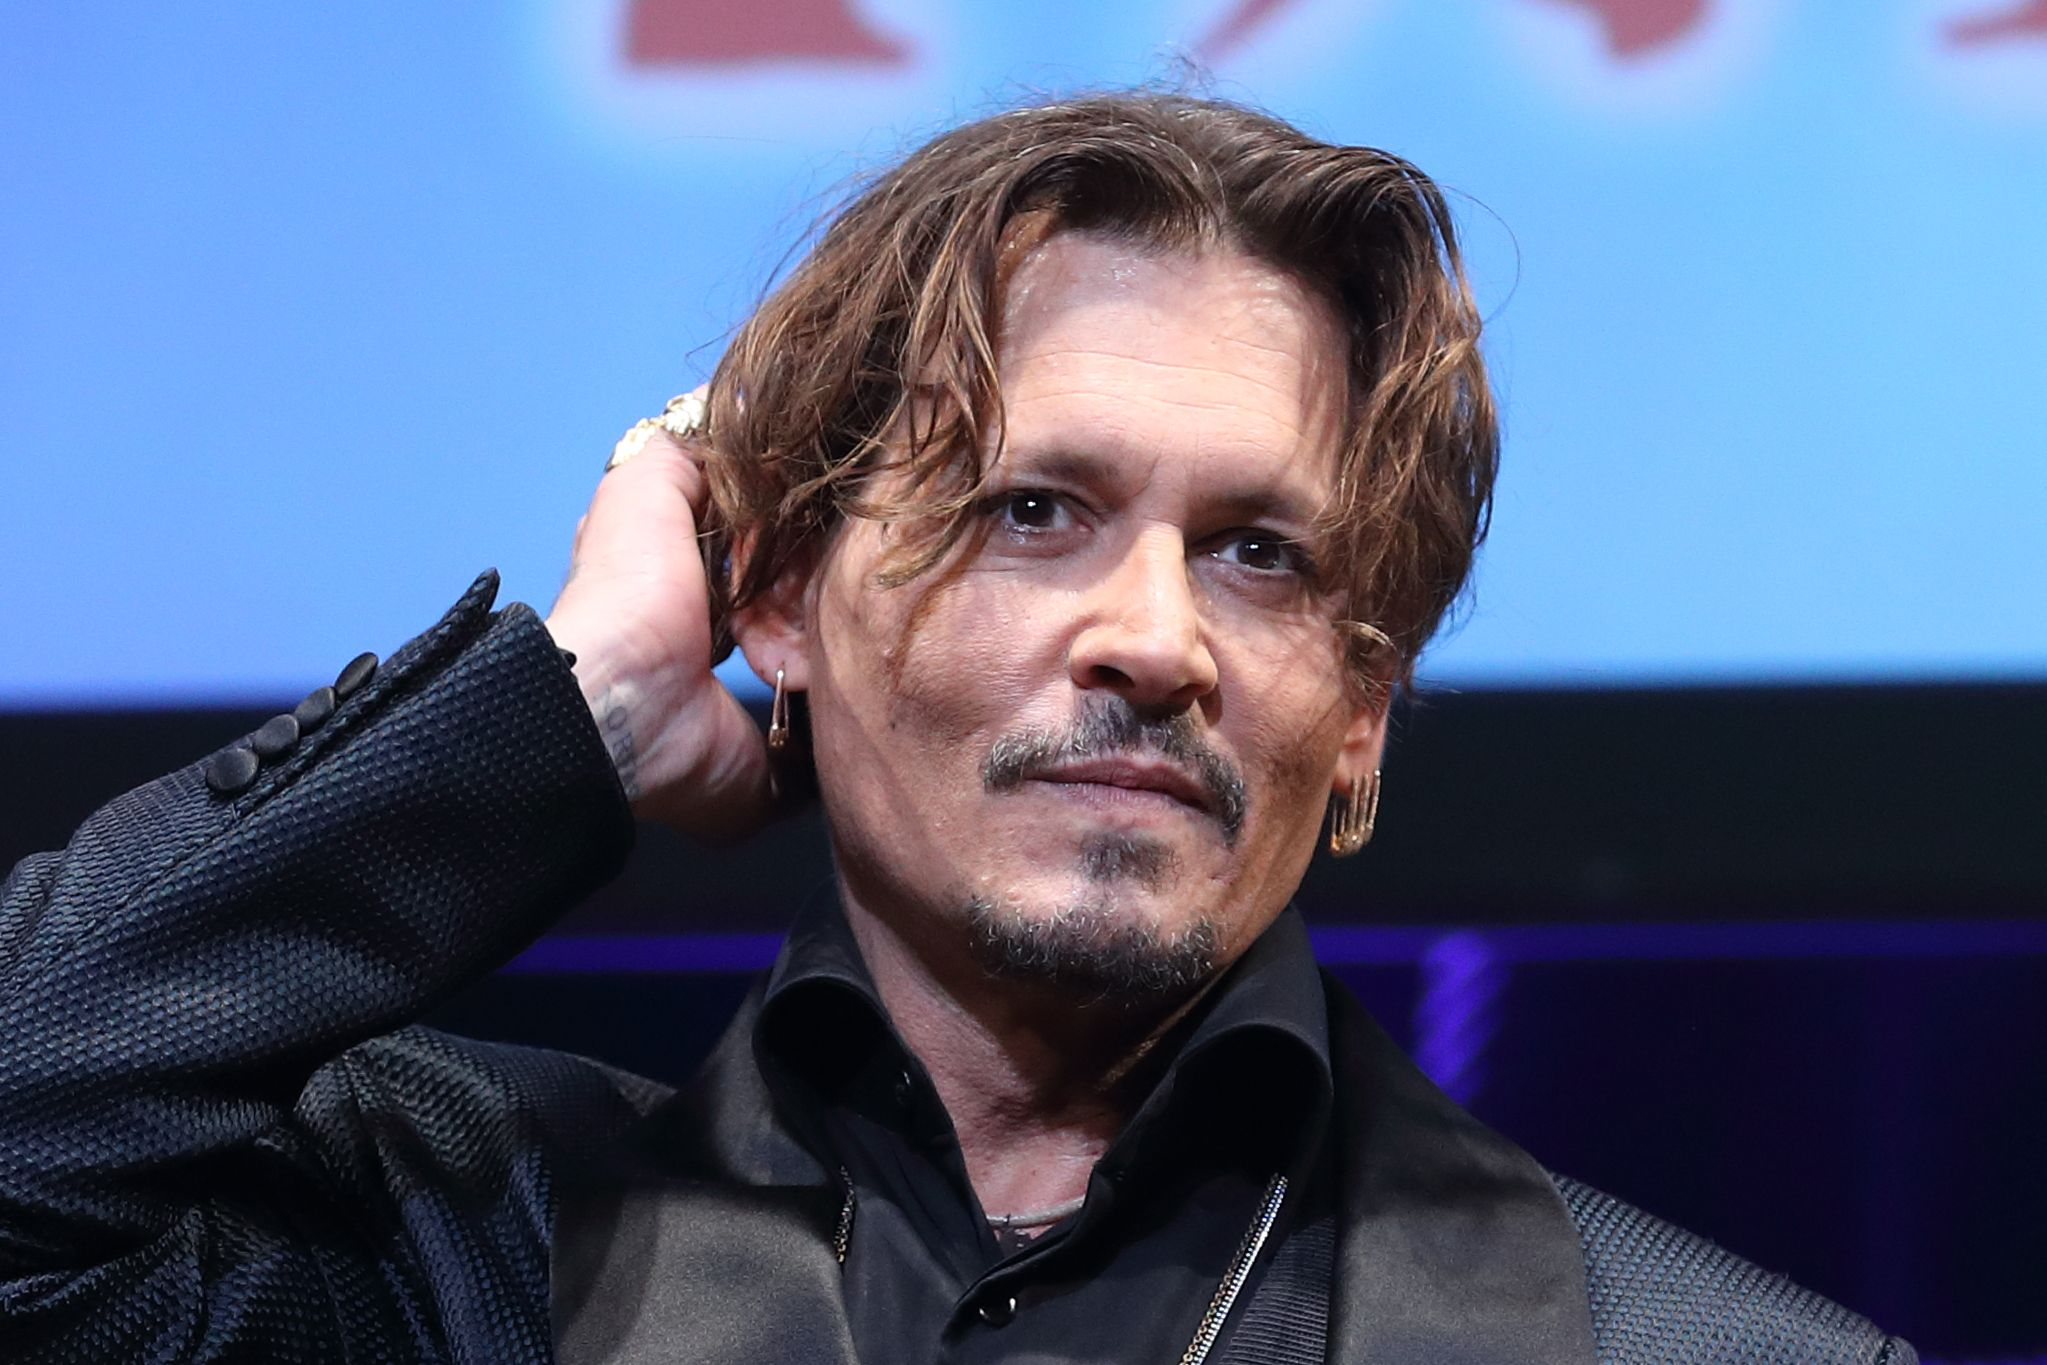 Johnny Depp'Pirates of the Caribbean Dead Men Tell No Tales&#039 premiere Tokyo Japan- 20 Jun 2017